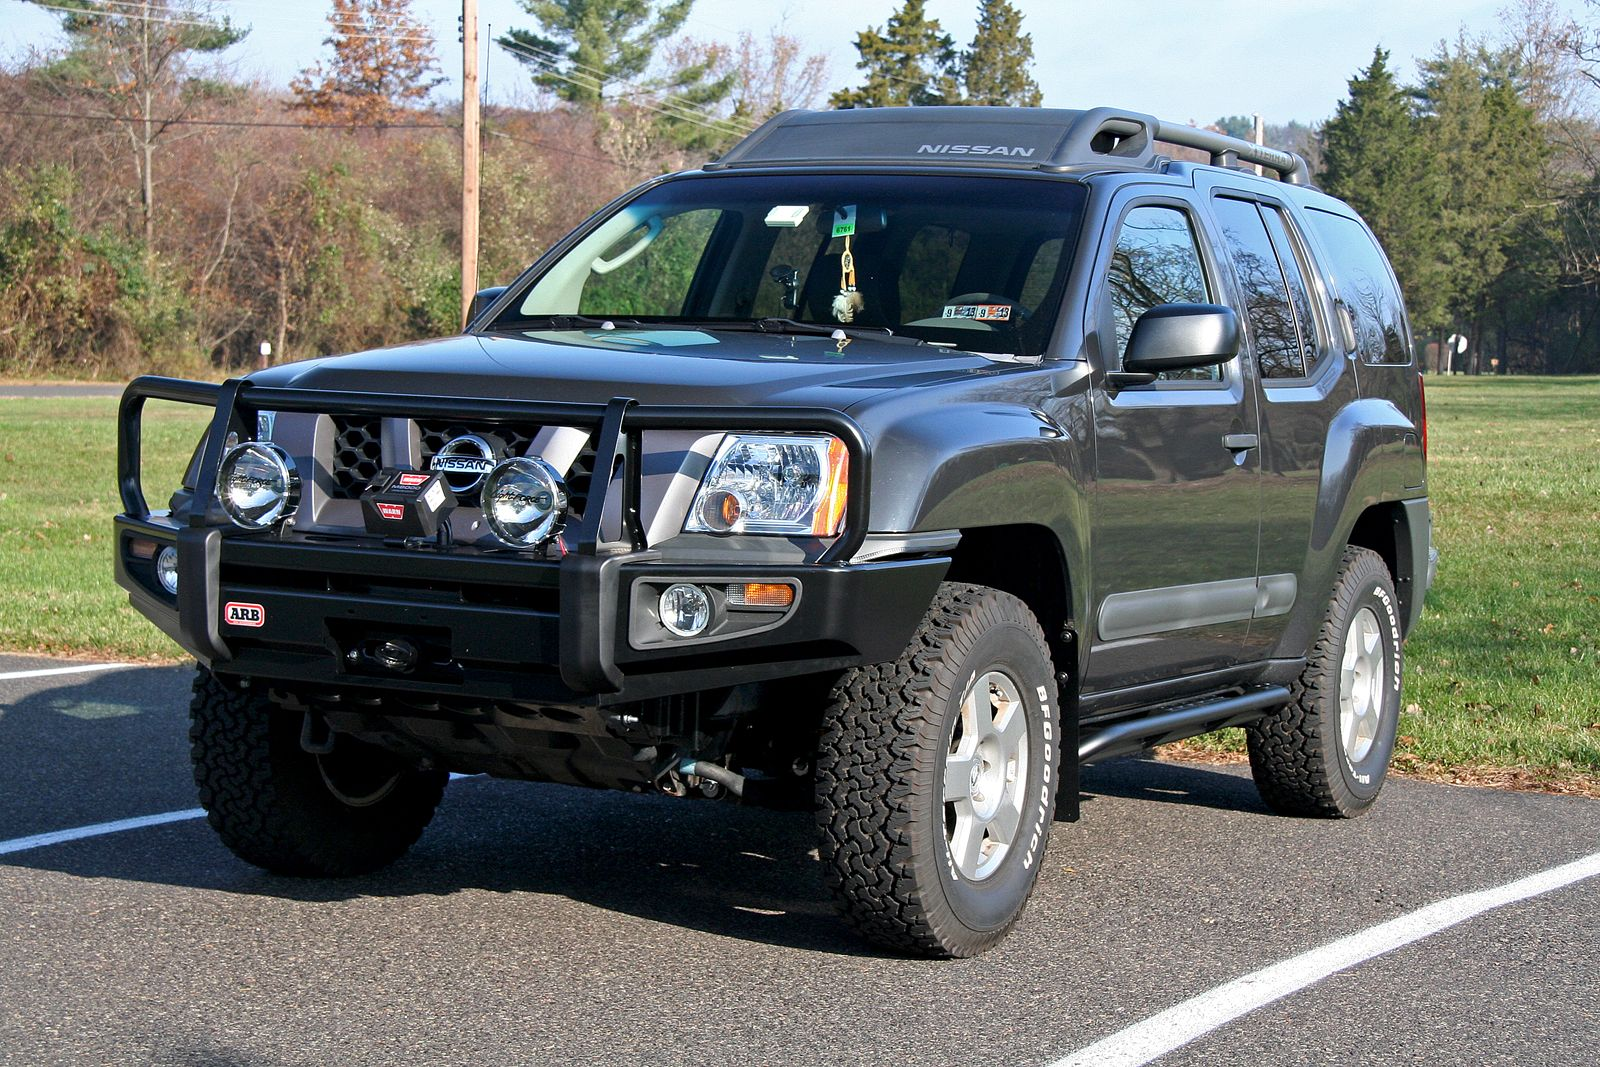 MLO Vehicle Build 2007 Nissan Xterra Overland Products